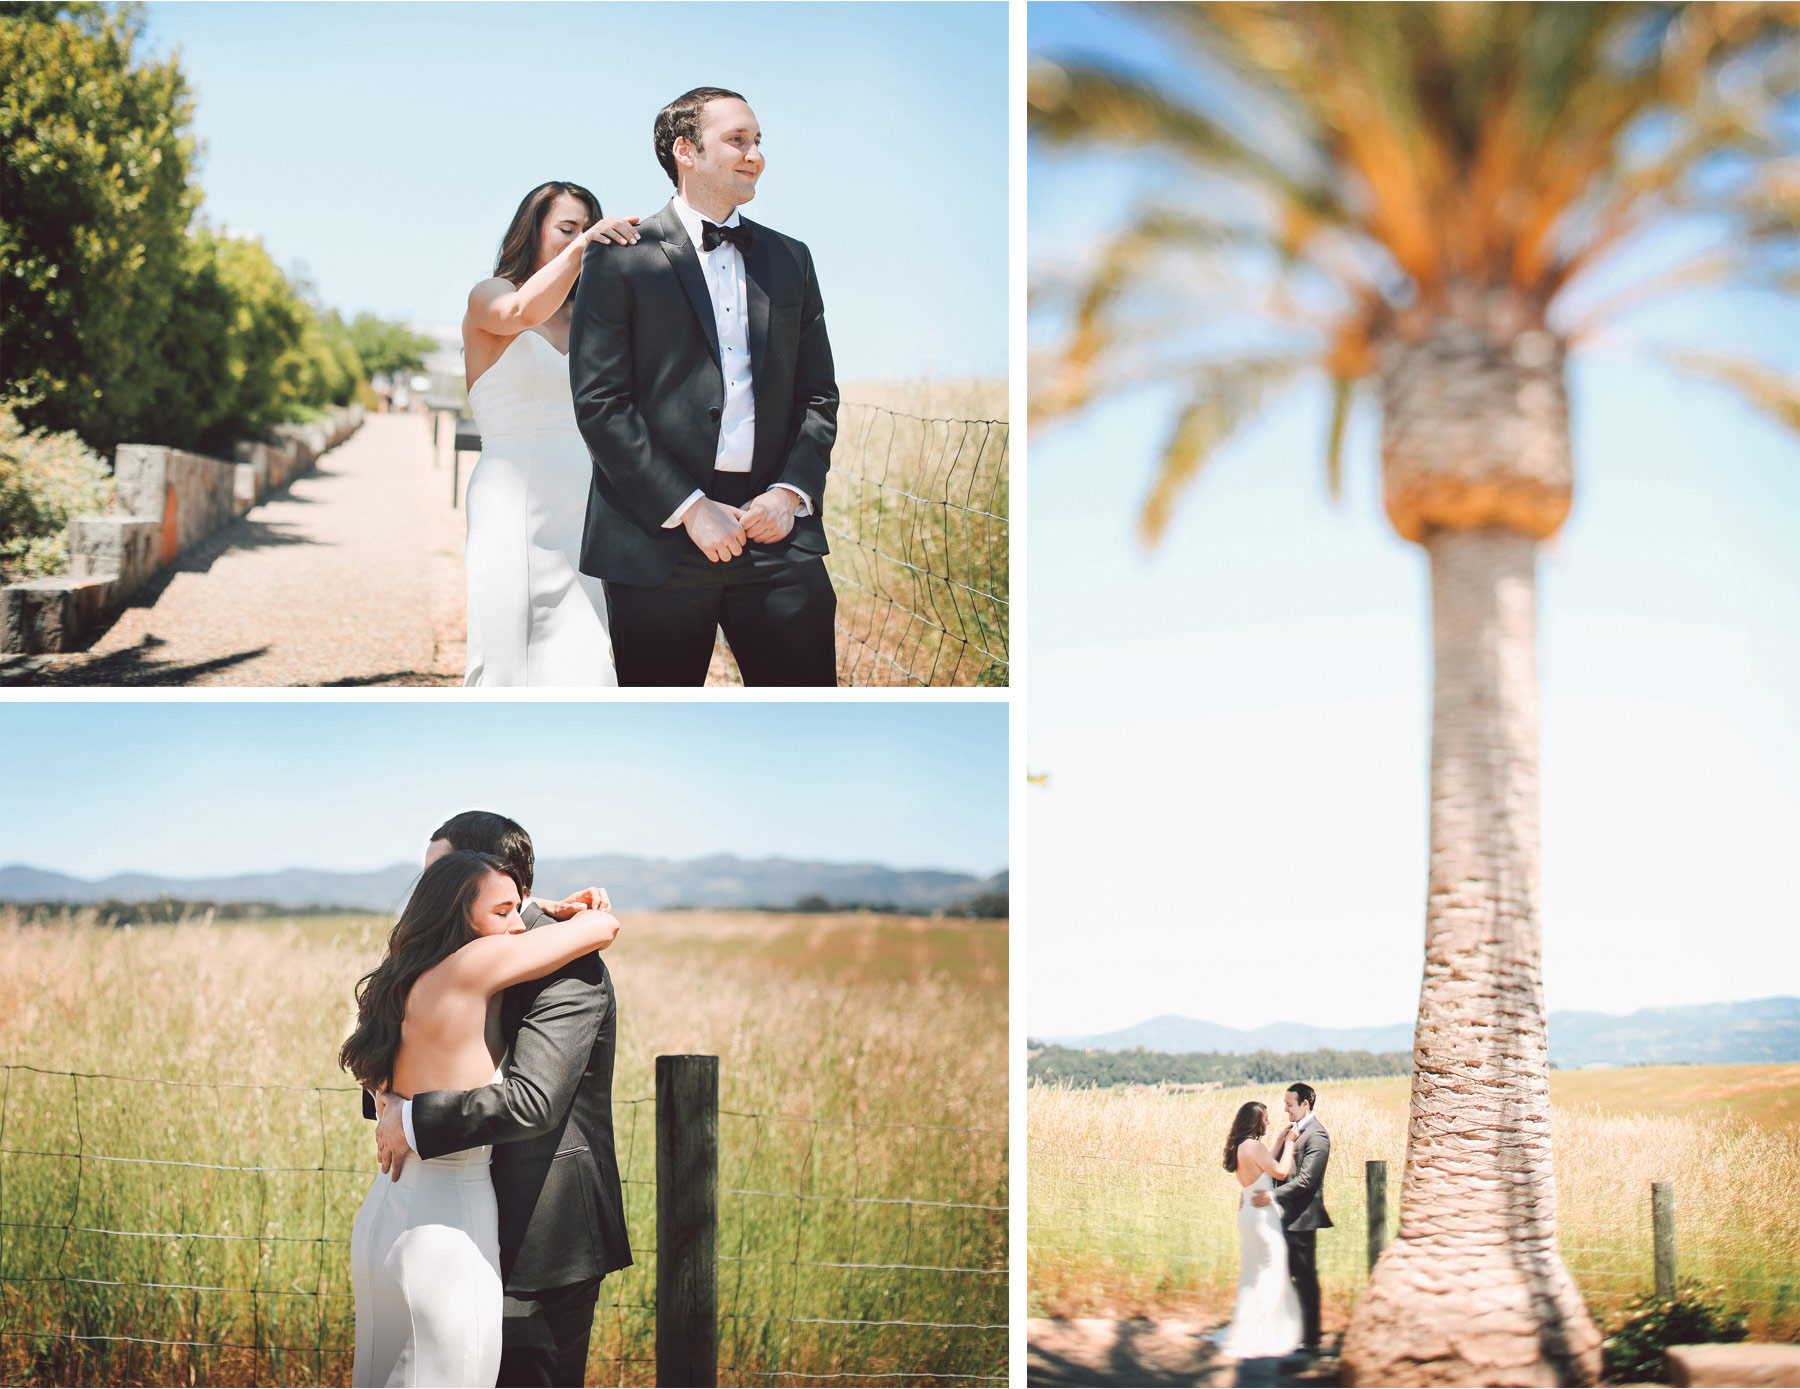 06-Napa-California-Wedding-Photographer-by-Andrew-Vick-Photography-Spring-Destination-Carneros-Resort-and-Spa-First-Meeting-Look-Bride-Groom-Embrace-Palm-Tree-Vintage-Alex-and-Roger.jpg